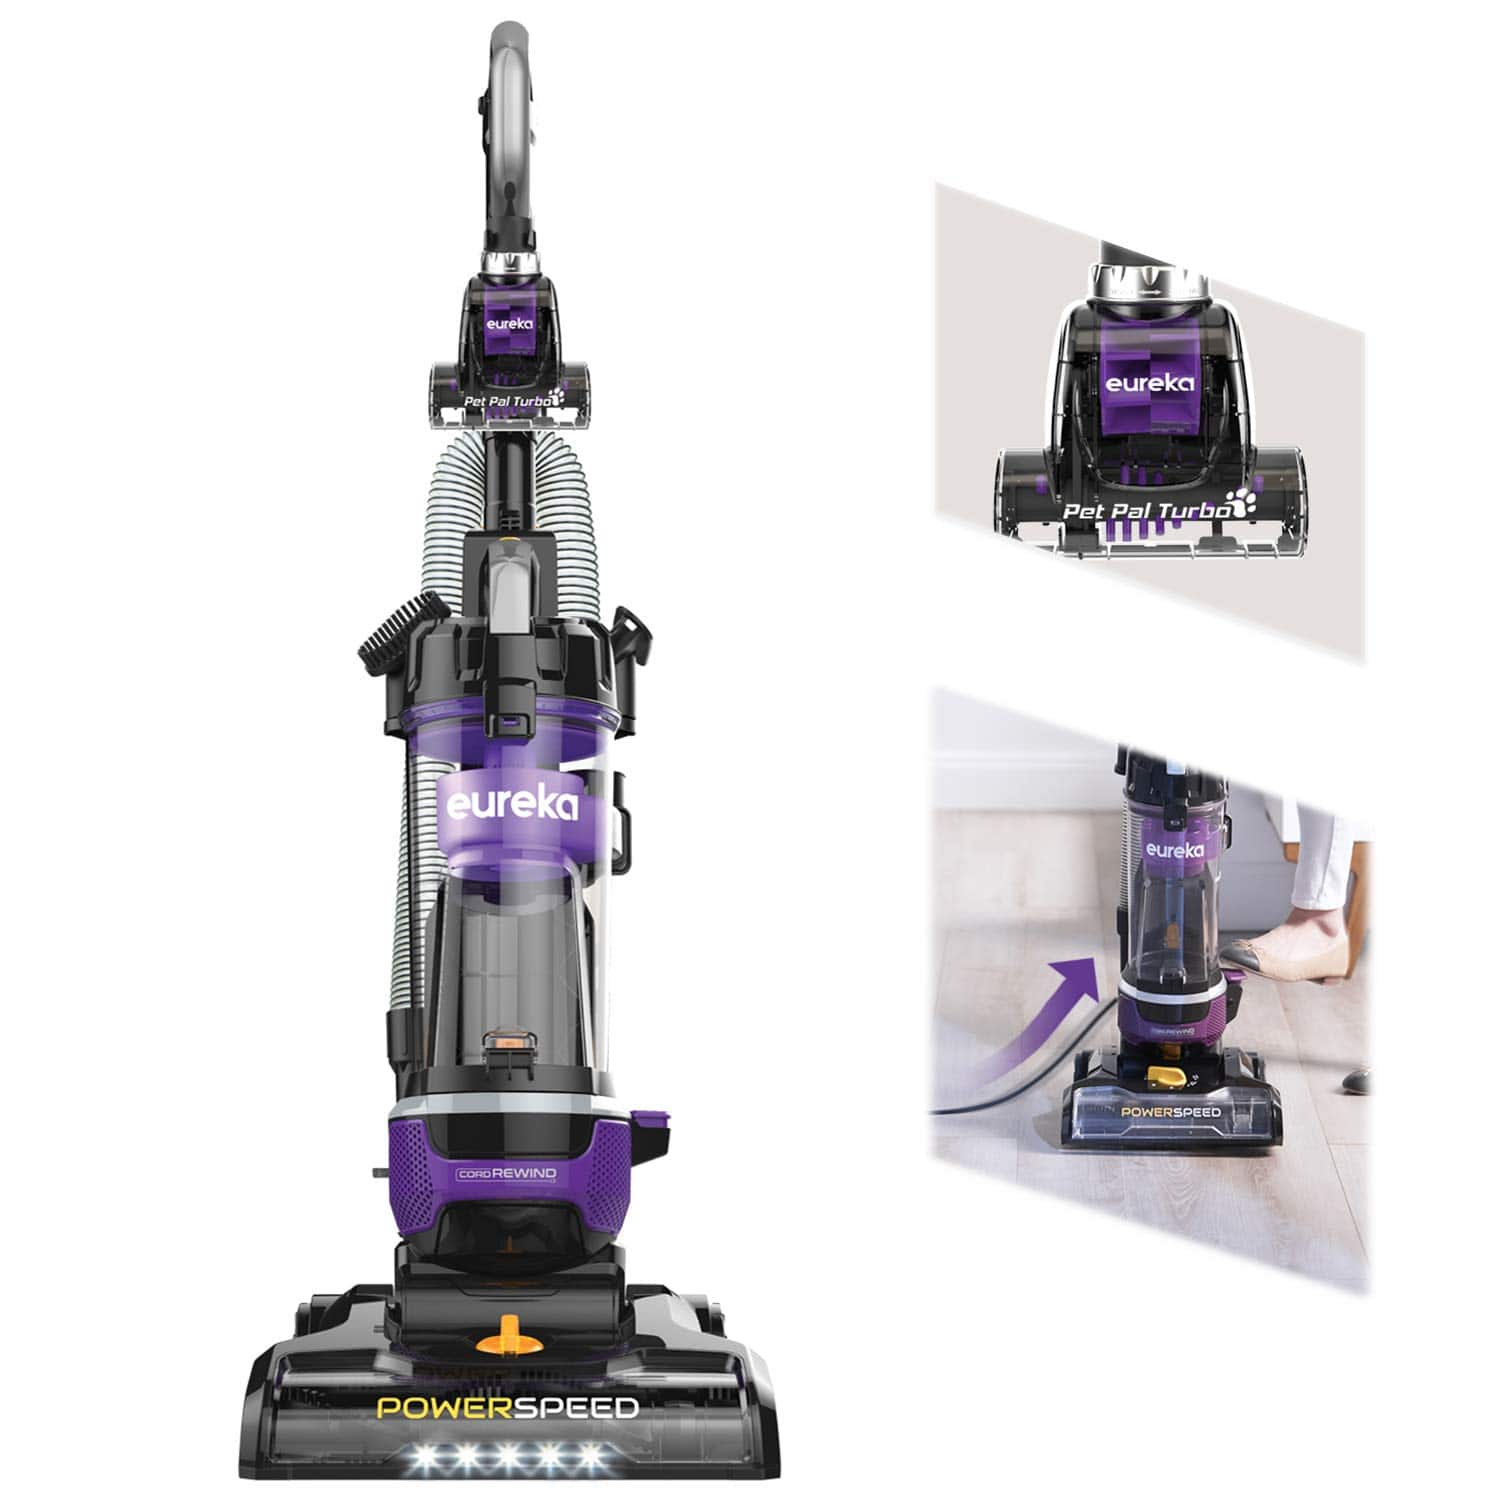 Eureka NEU202 Upright Vacuum Cleaner with Automatic Cord Rewind and LED Headlight + Free Shipping $119.98